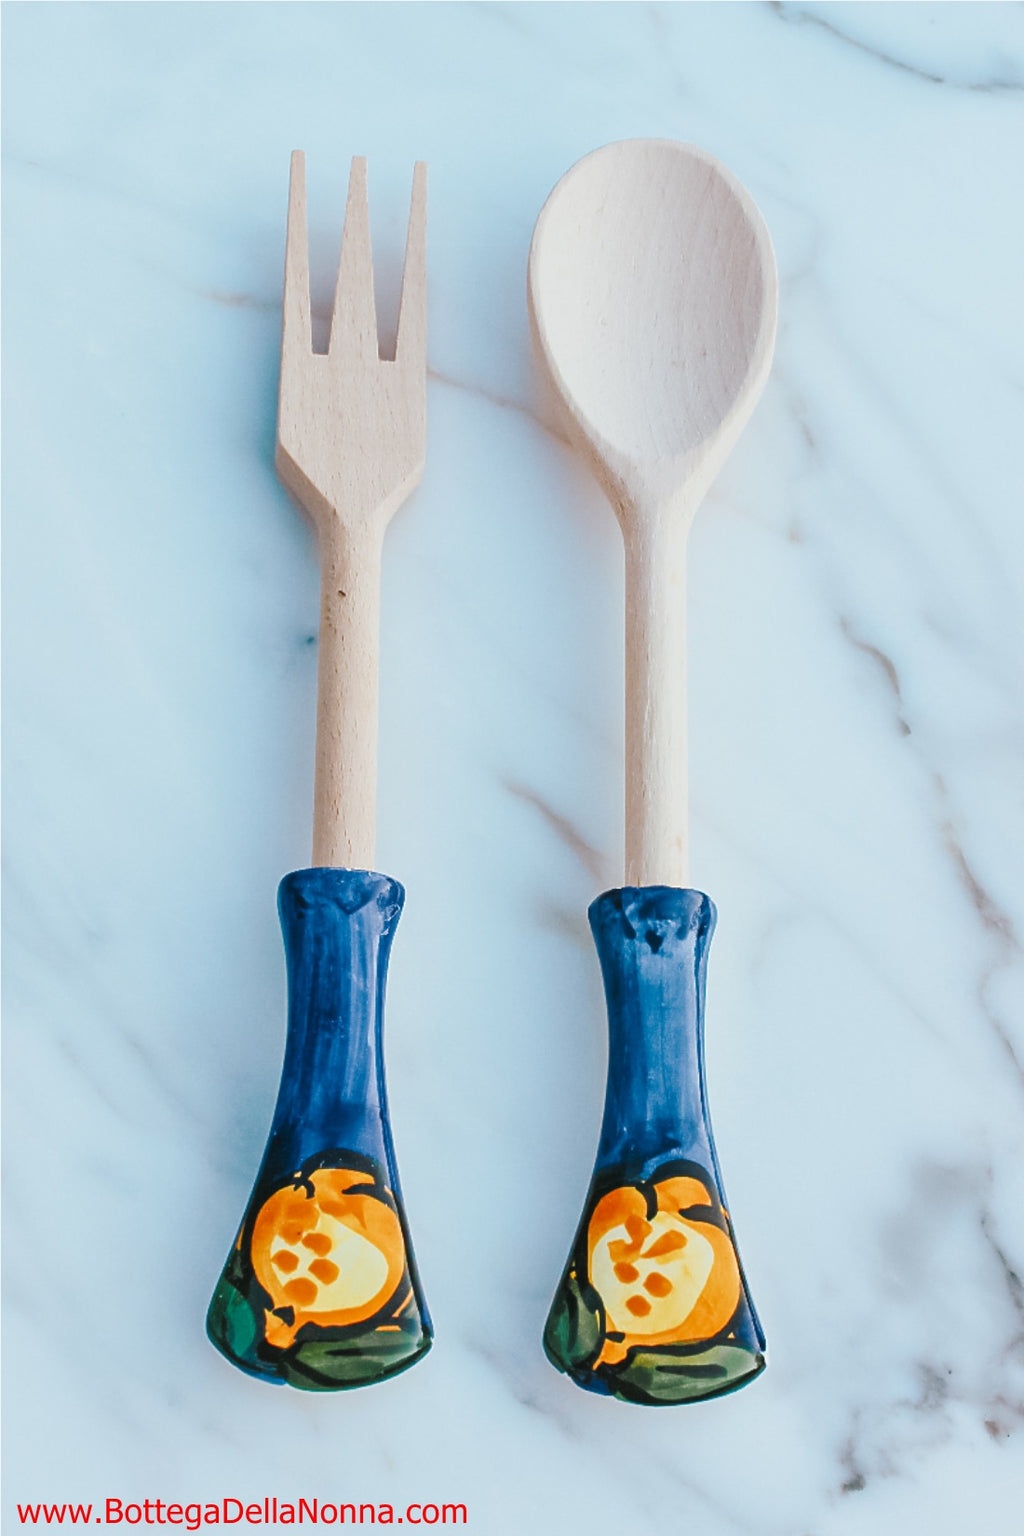 The Positano Wood Salad Spoon and Fork Set